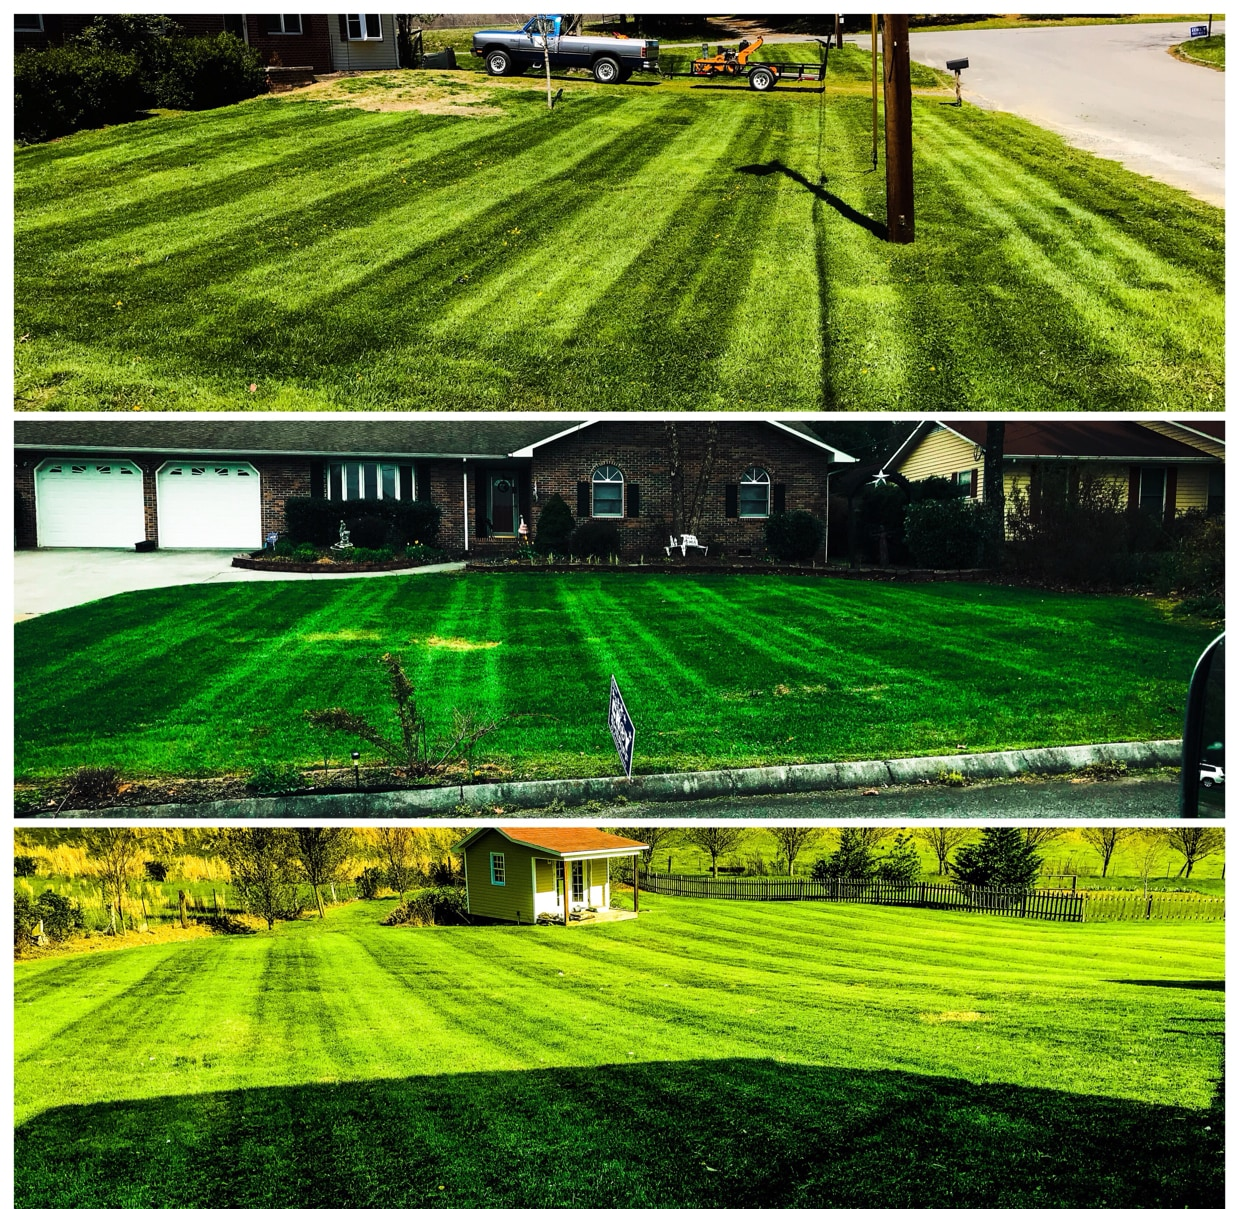 Scotts Mowing and lawn care